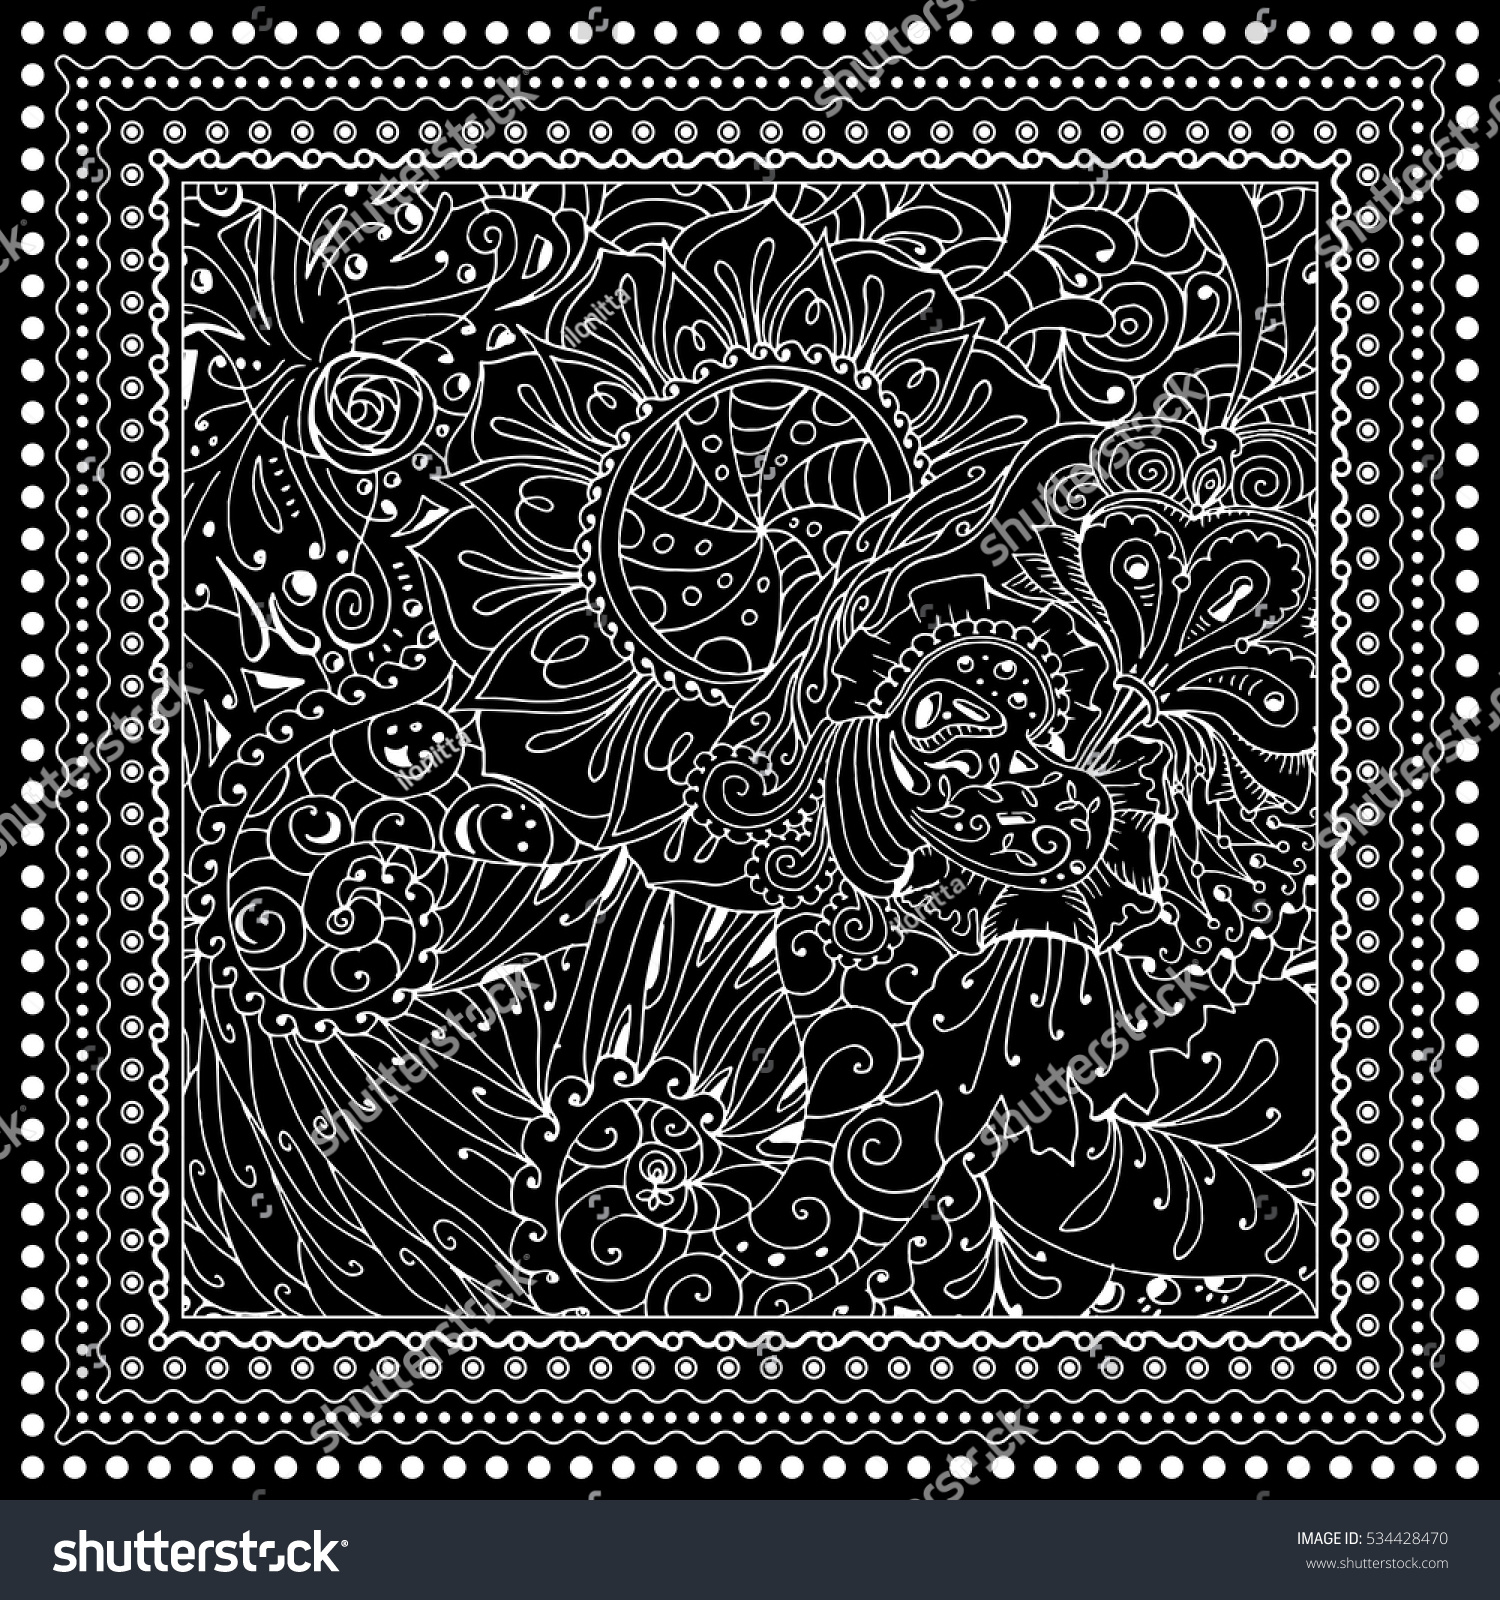 Black Vector Mono Color Illustration Adult Coloring Book Page Design For Adults